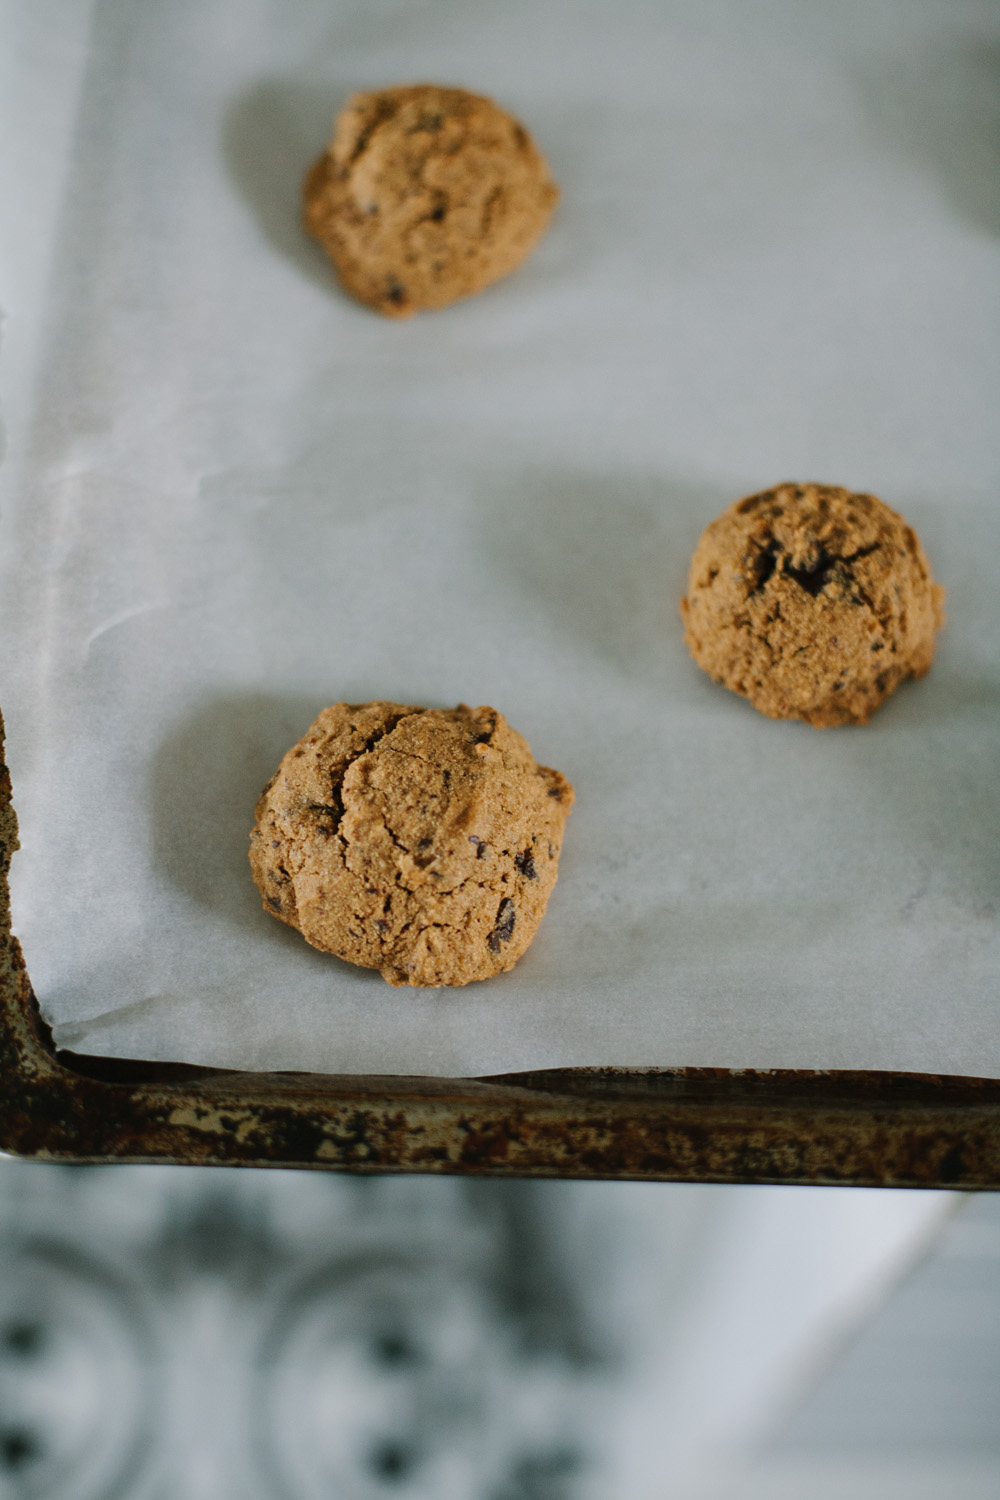 muffin-like chocolate chip breakfast cookies with cassava flour